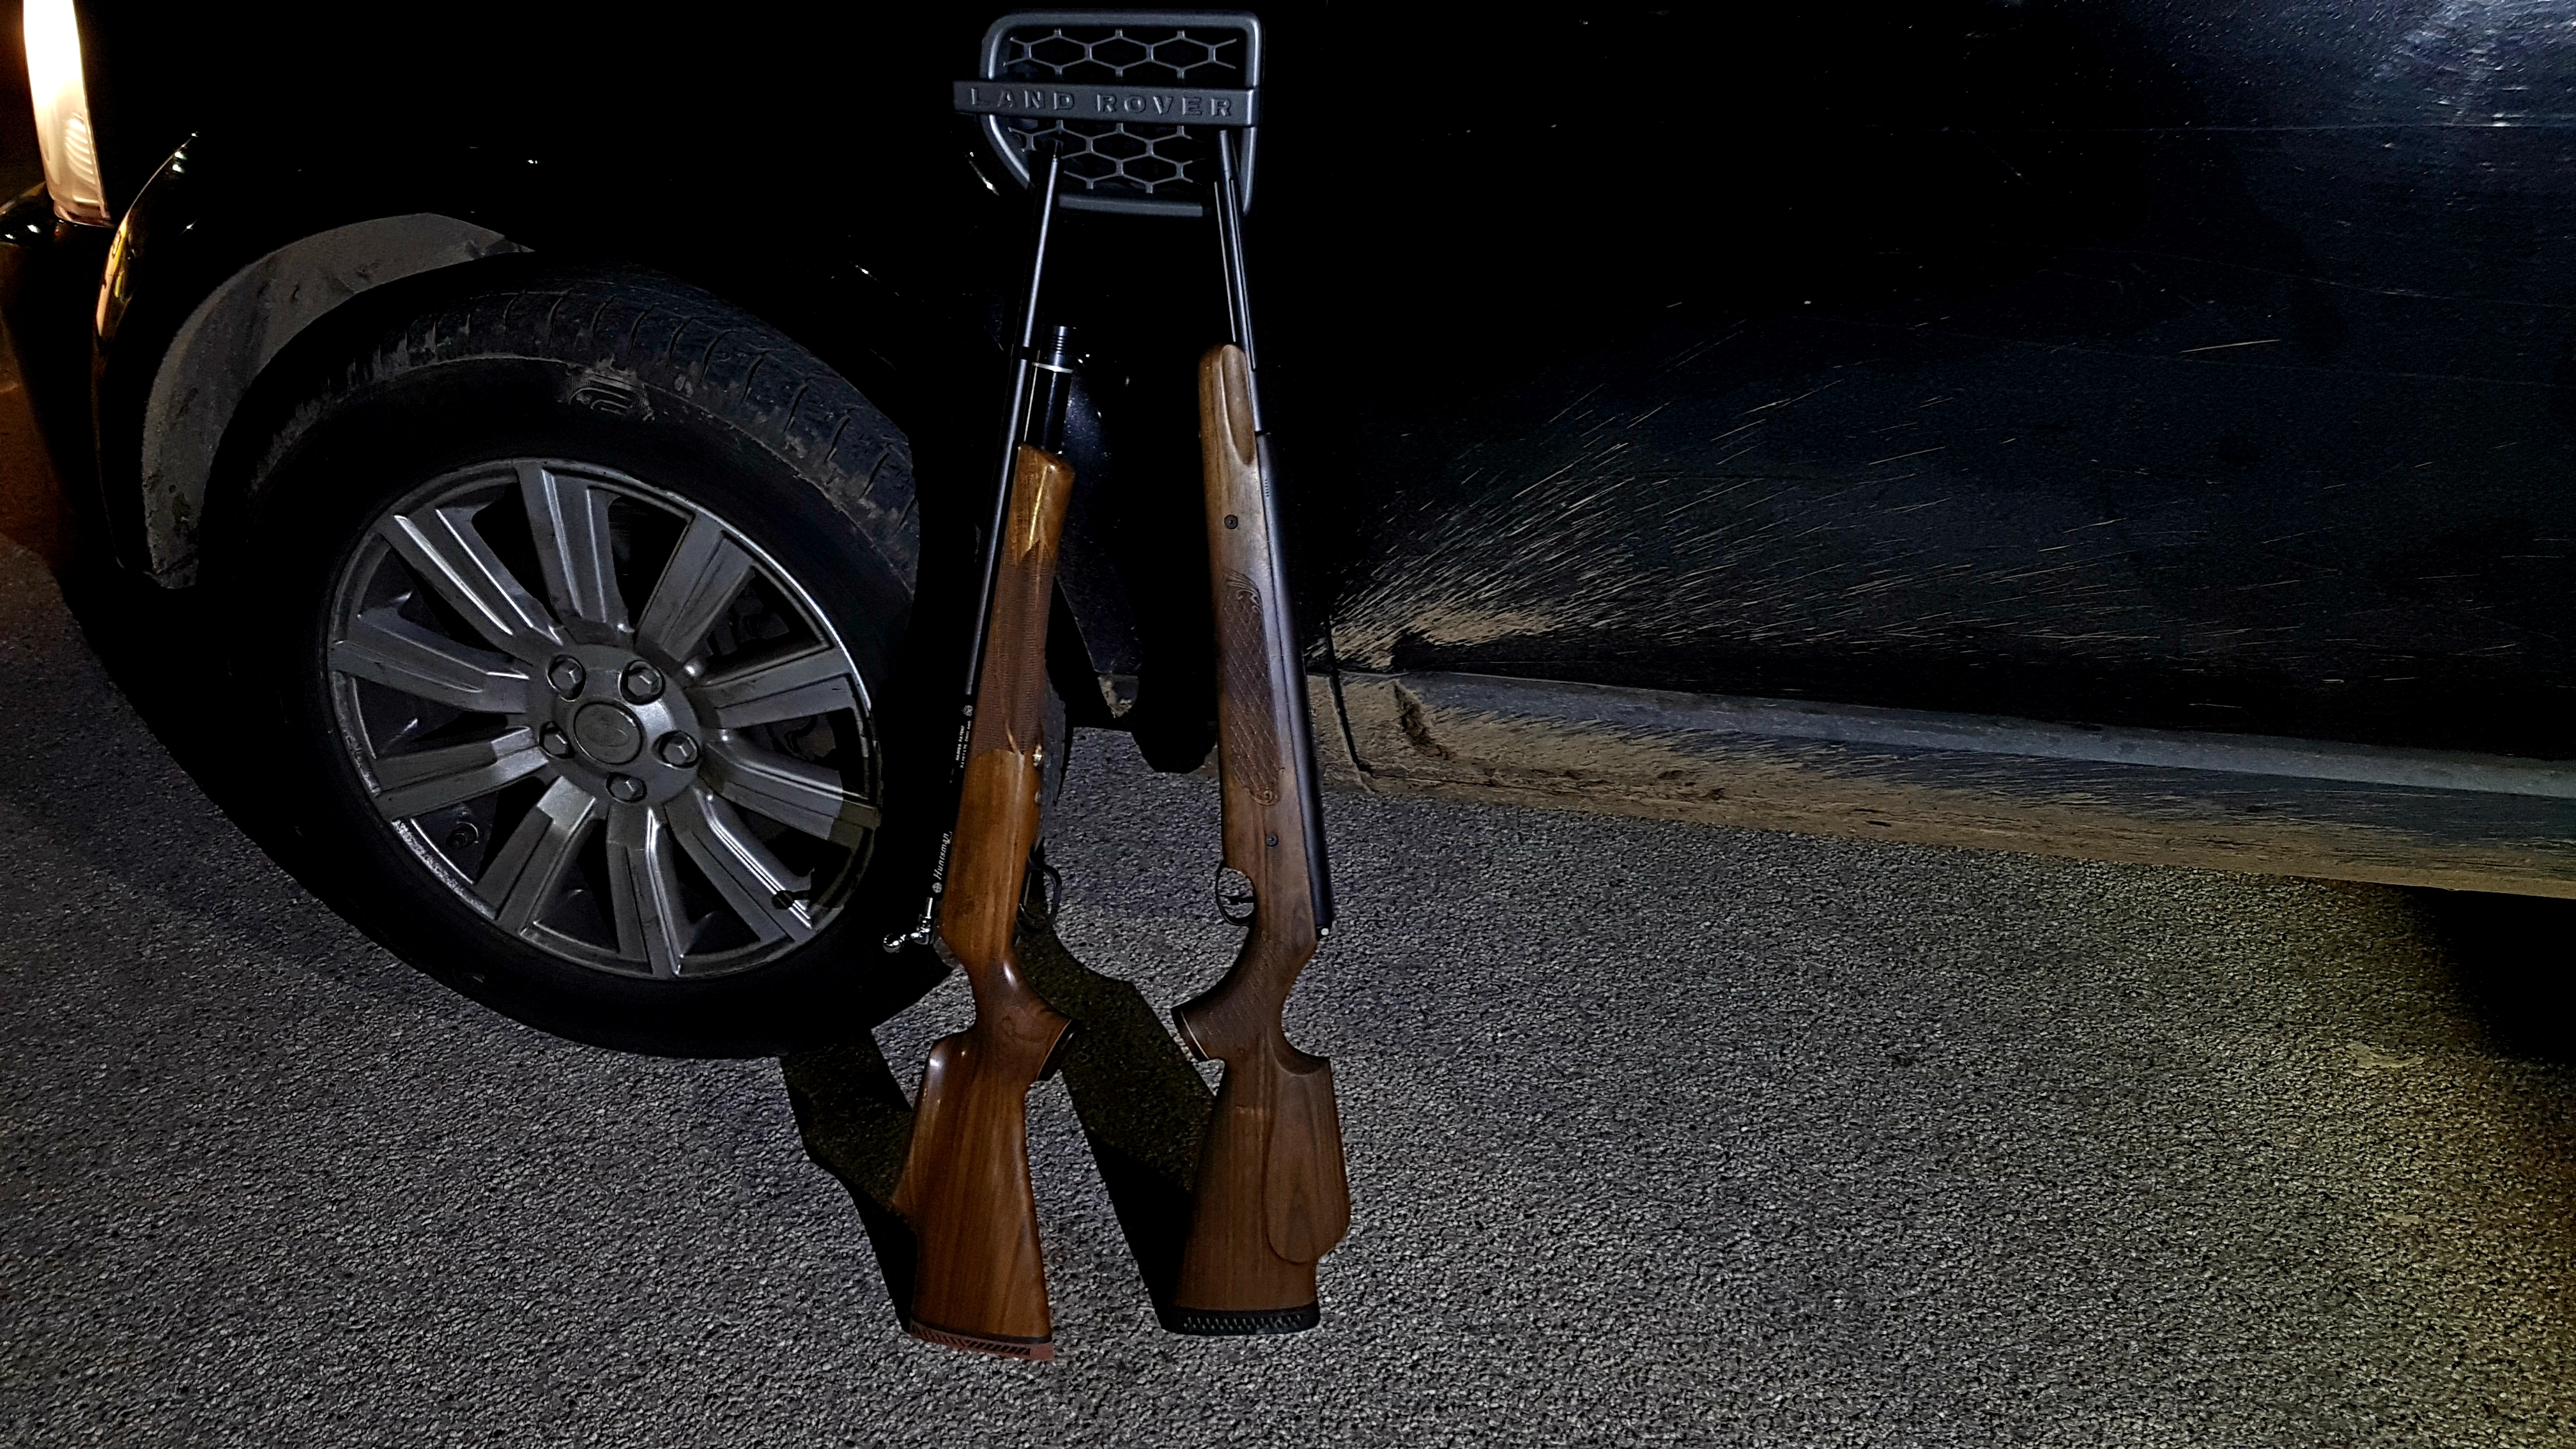 Seized rifles from Doncaster